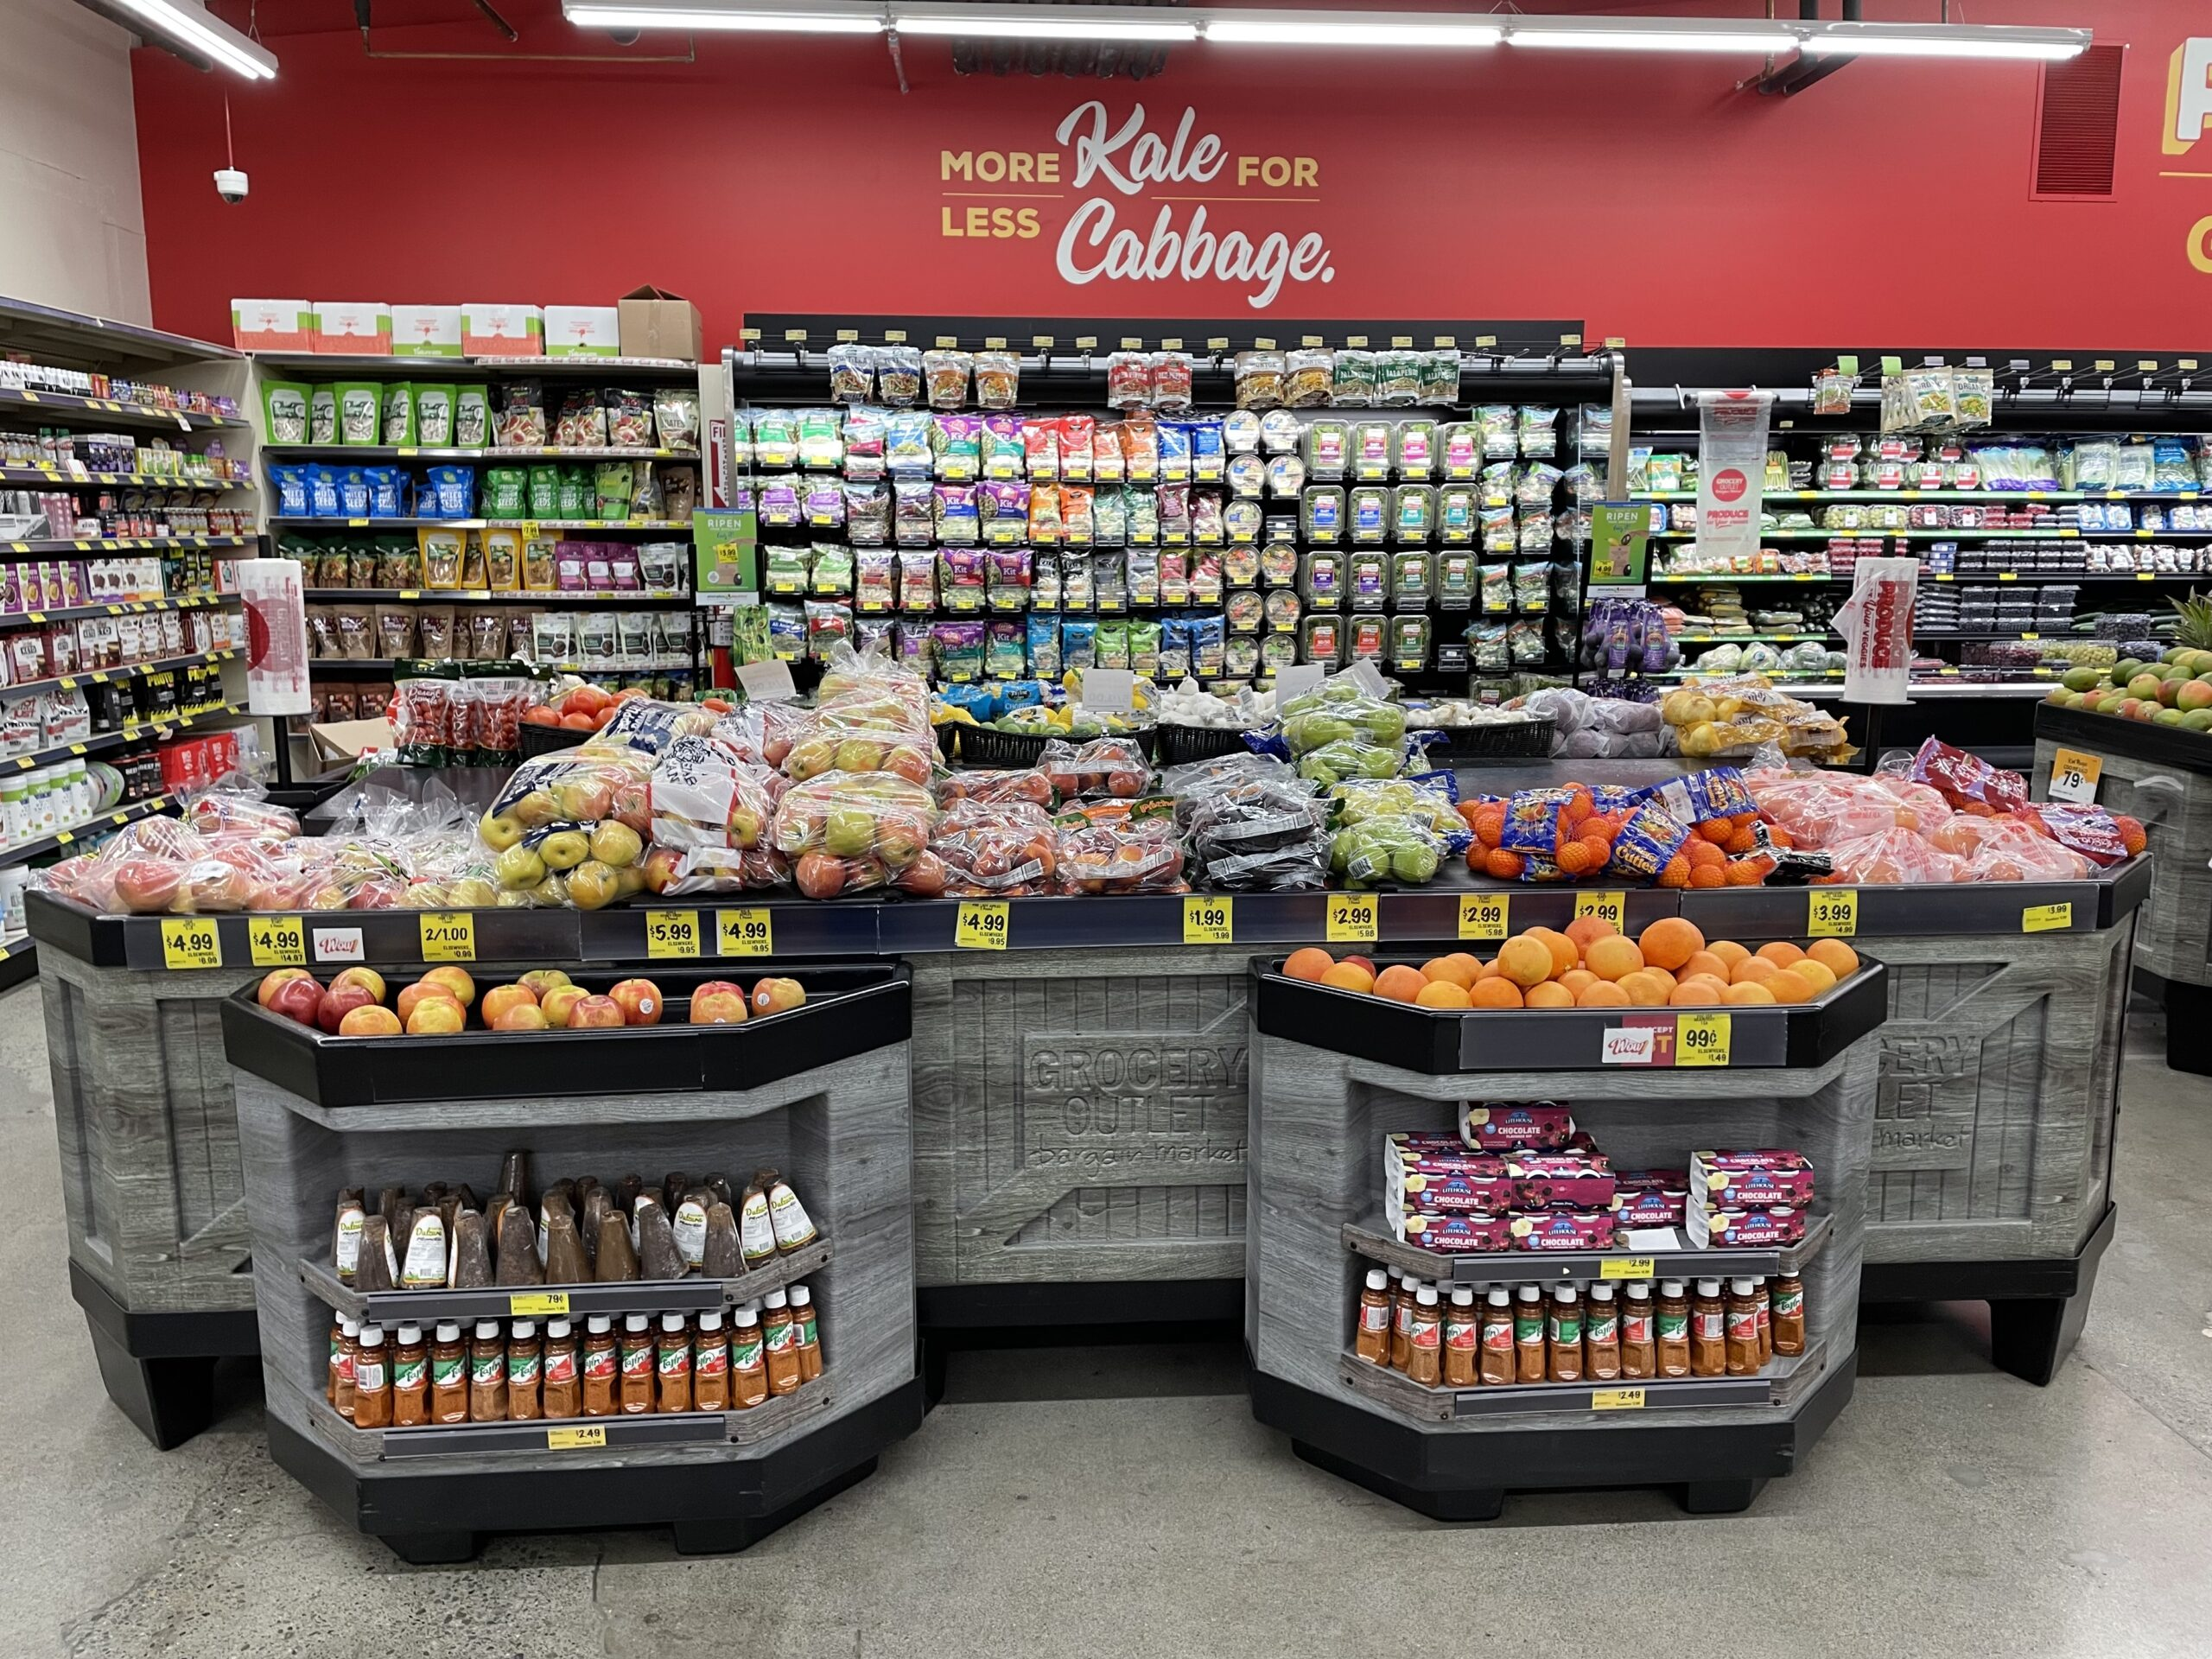 Grocery Outlet Bargain Markets In-Store Orchard Bins With Apples And Oranges Sitting On Top Of Display Bin Shelving With Salad Racks Hanging In The Background